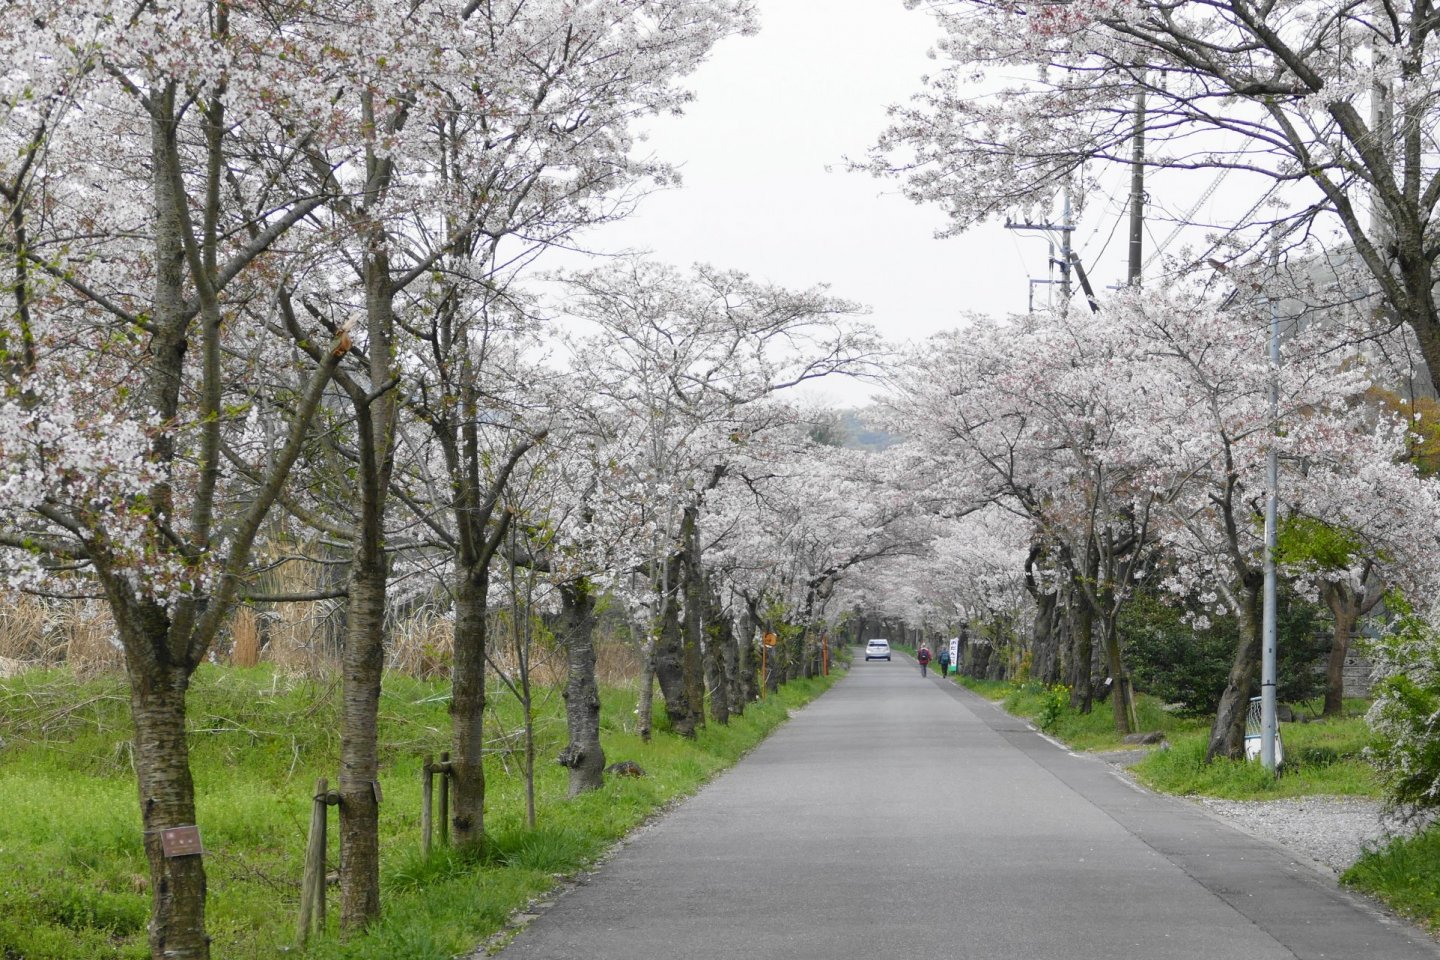 The tree-lined road approaching the park